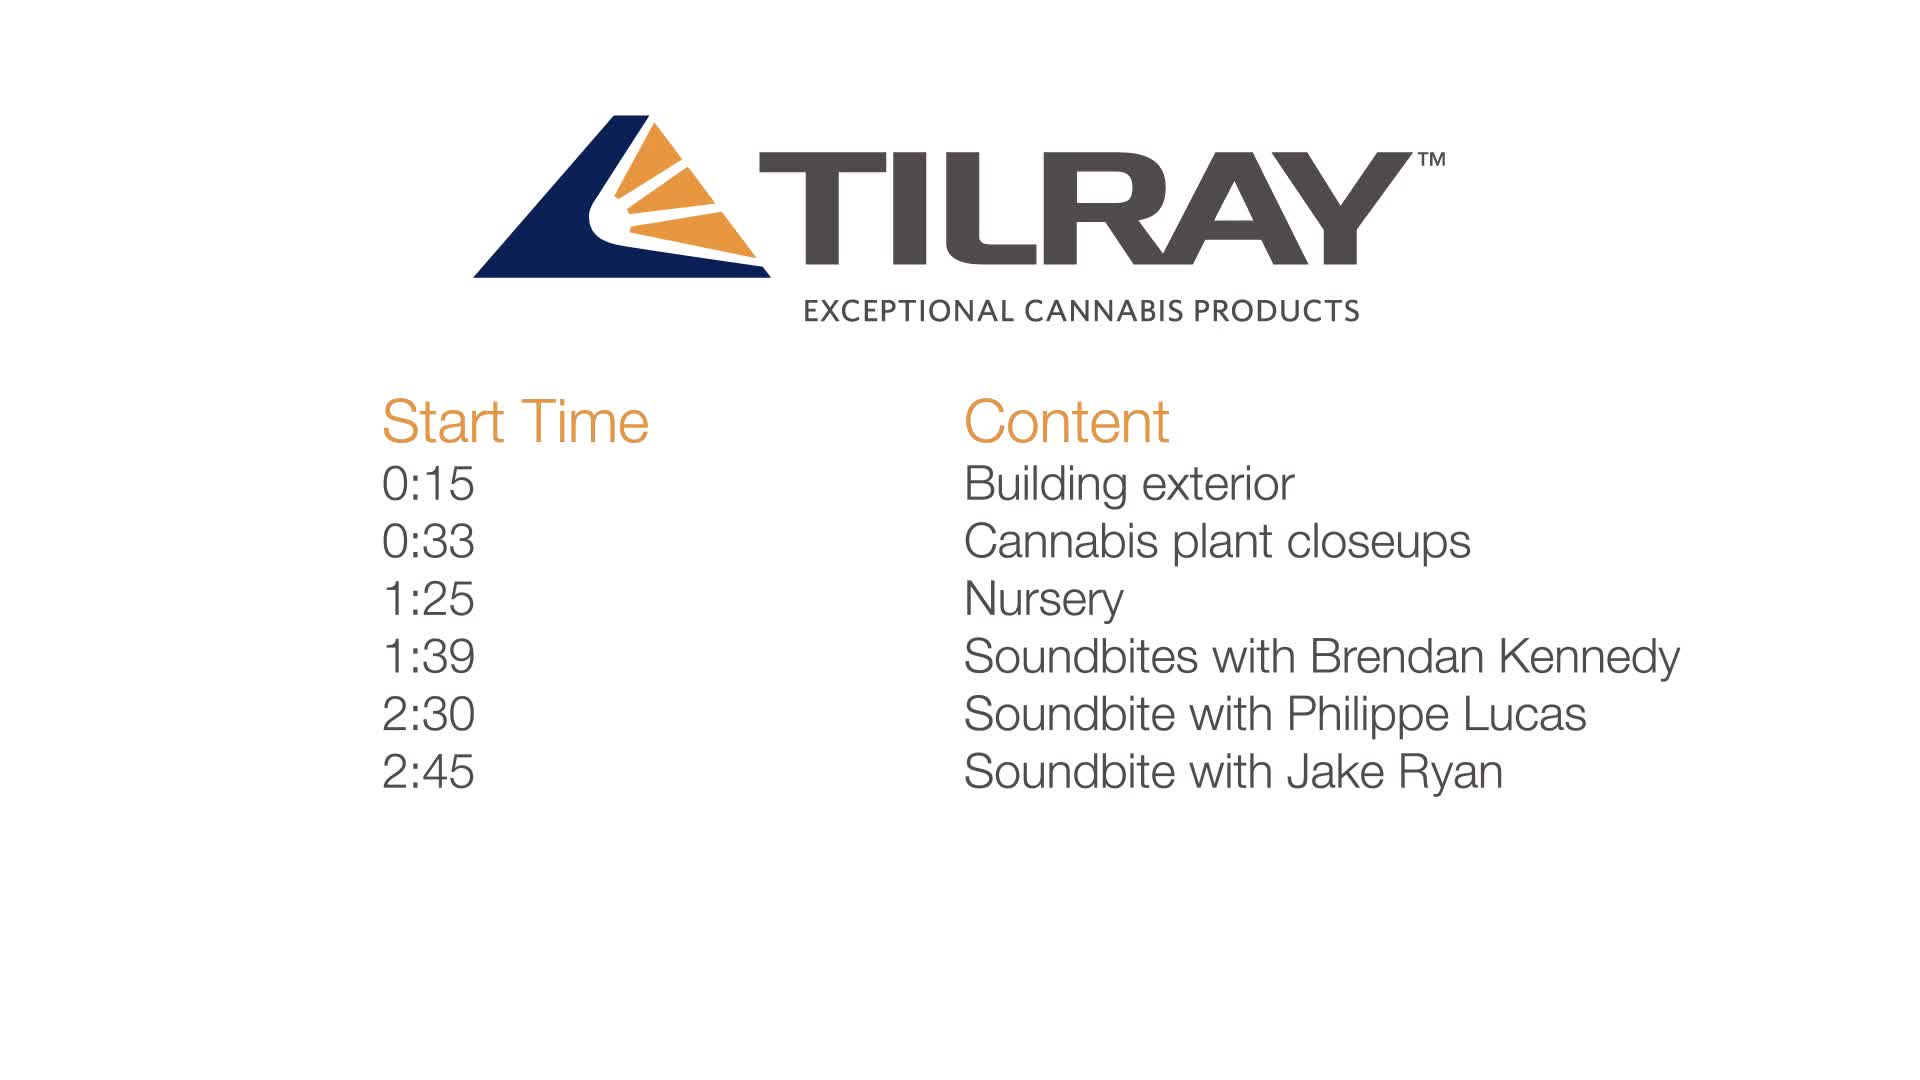 Privateer Holdings Canadian Subsidiary, Tilray, Opens $10+ Million Cannabis Facility in British Columbia